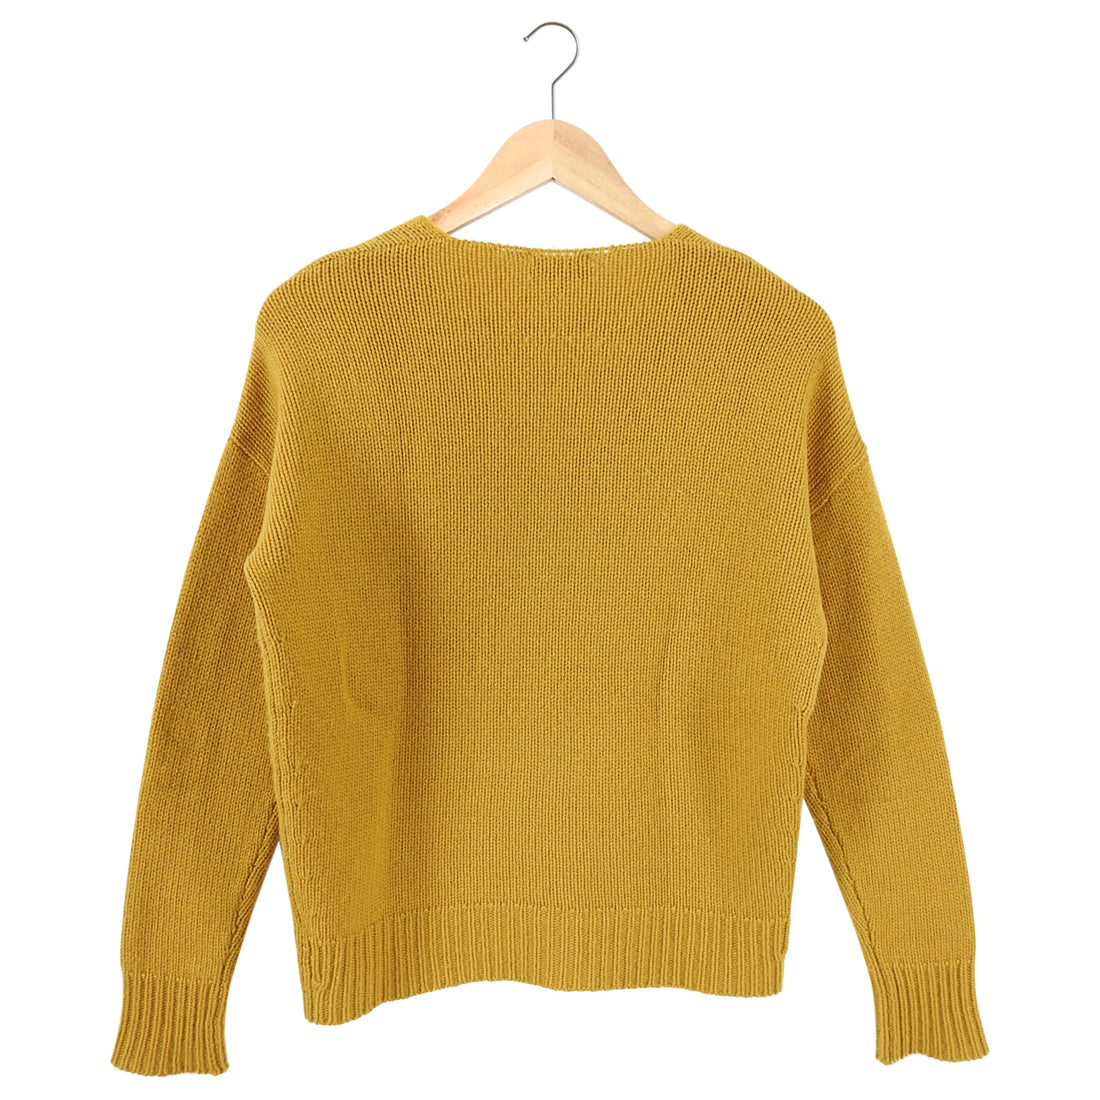 Theory Mustard Yellow Cashmere V neck Sweater - S